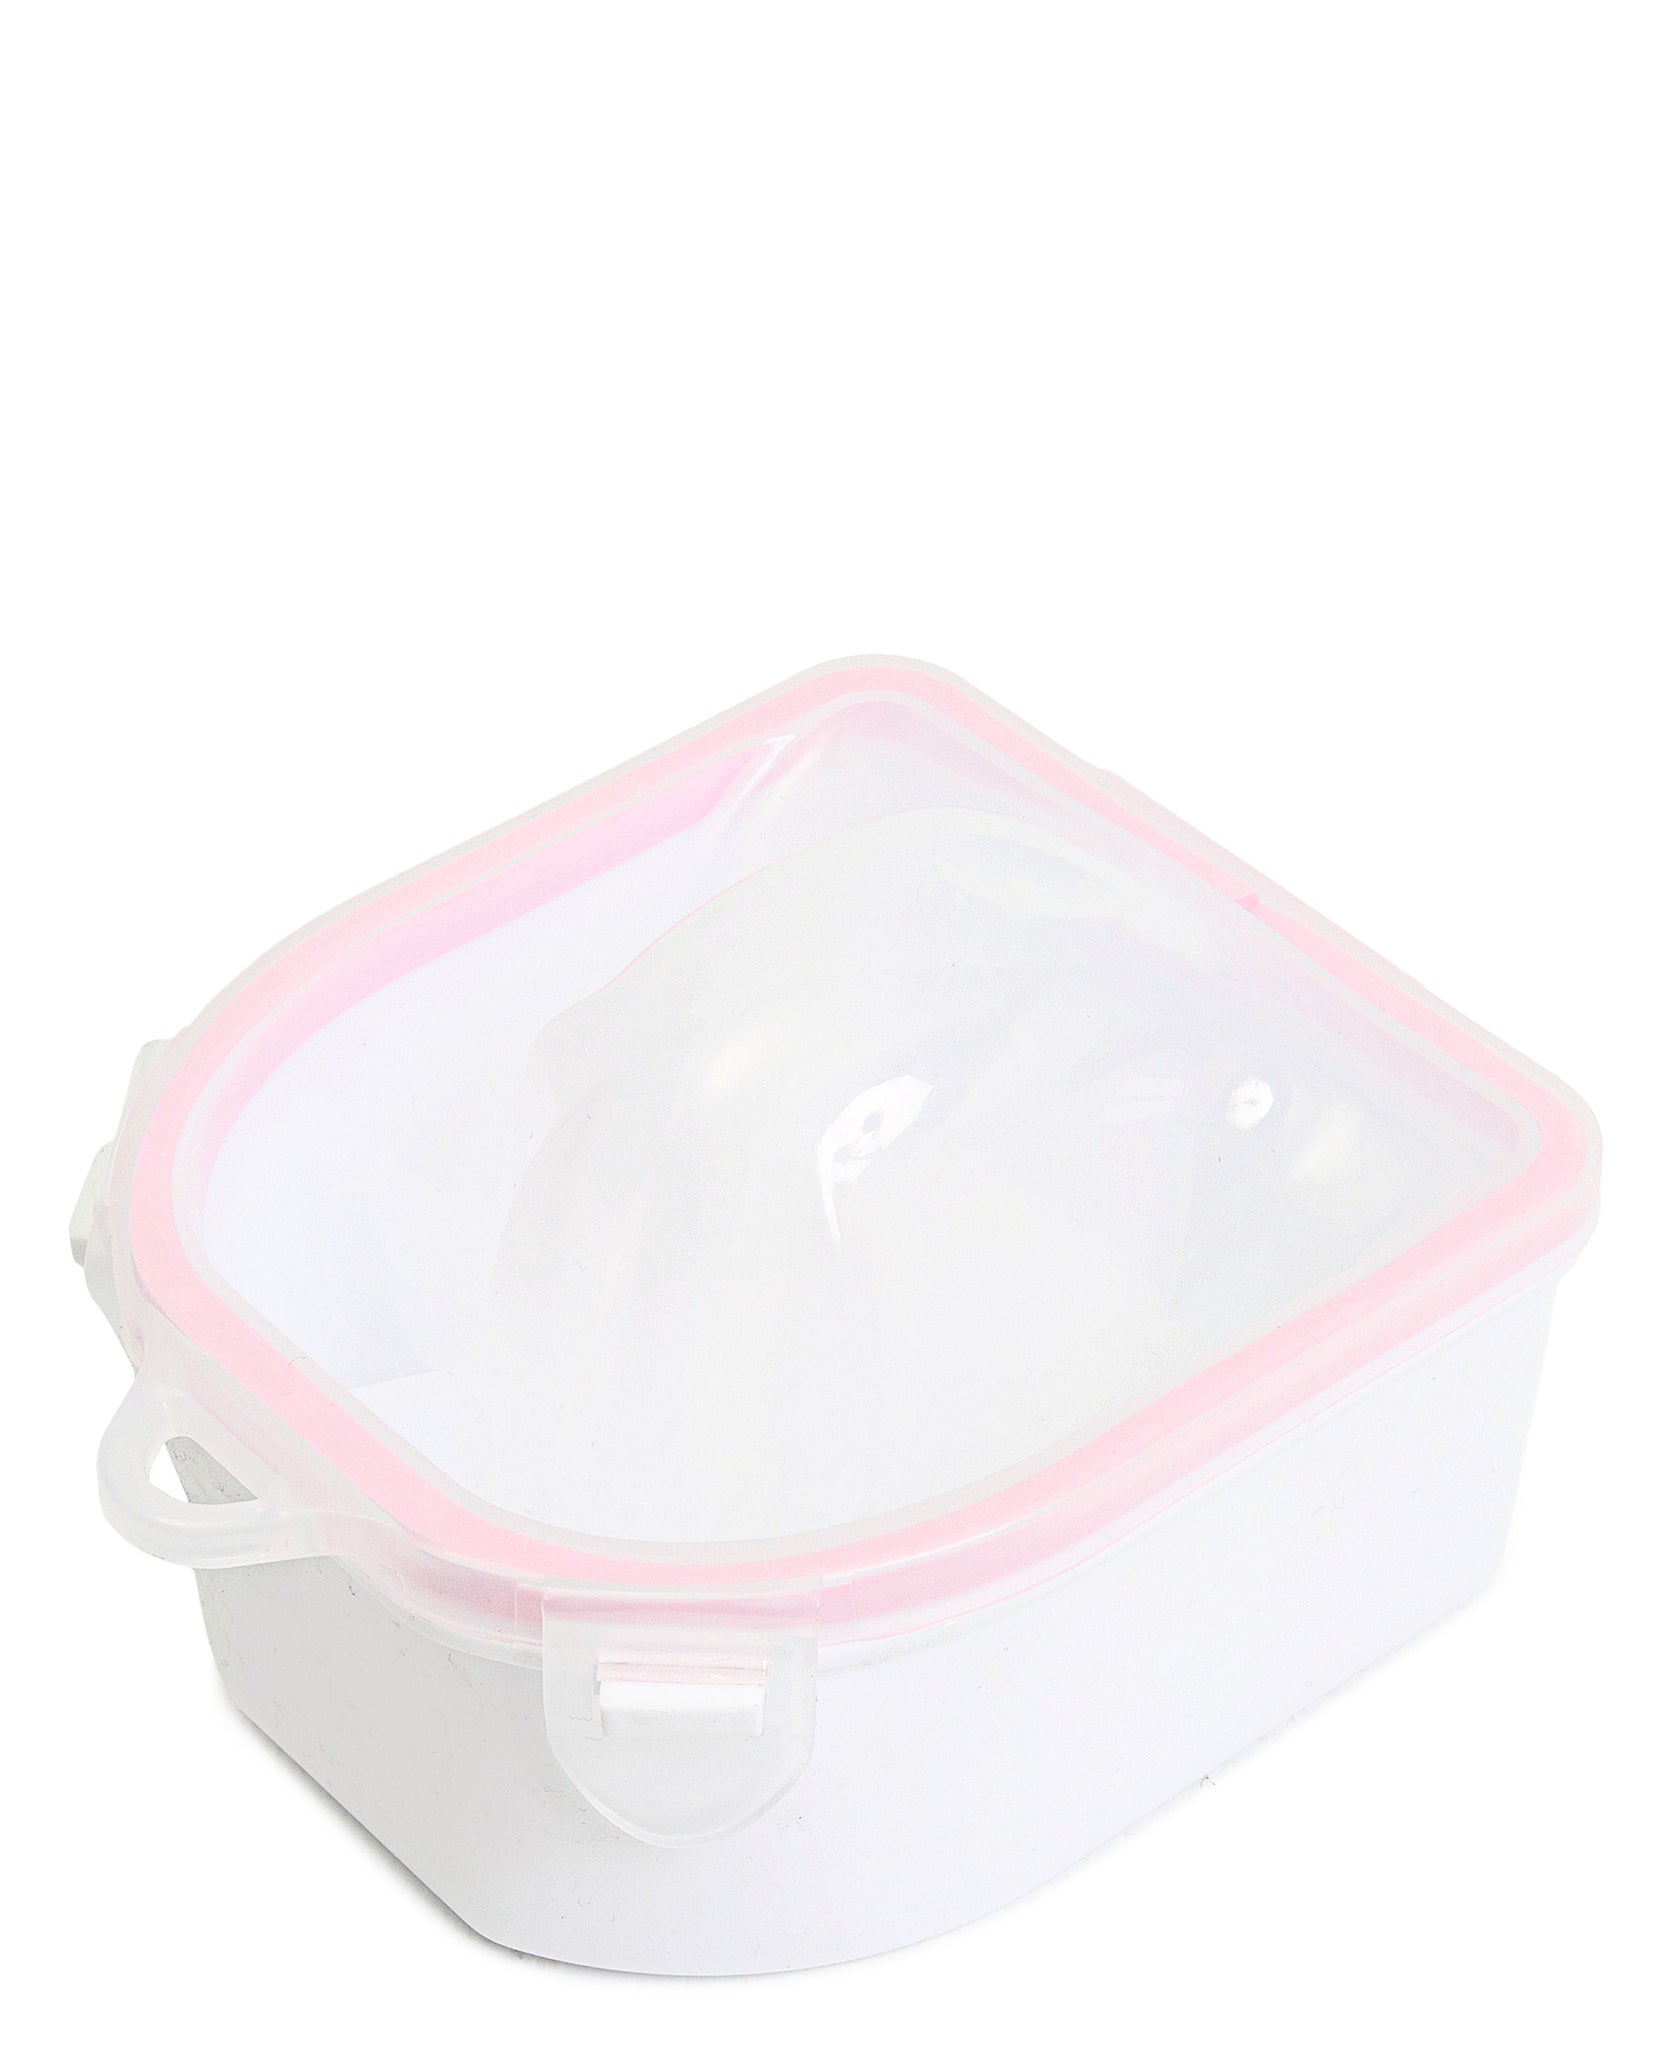 5 Fingers Nail Soaking Bowl - Pink